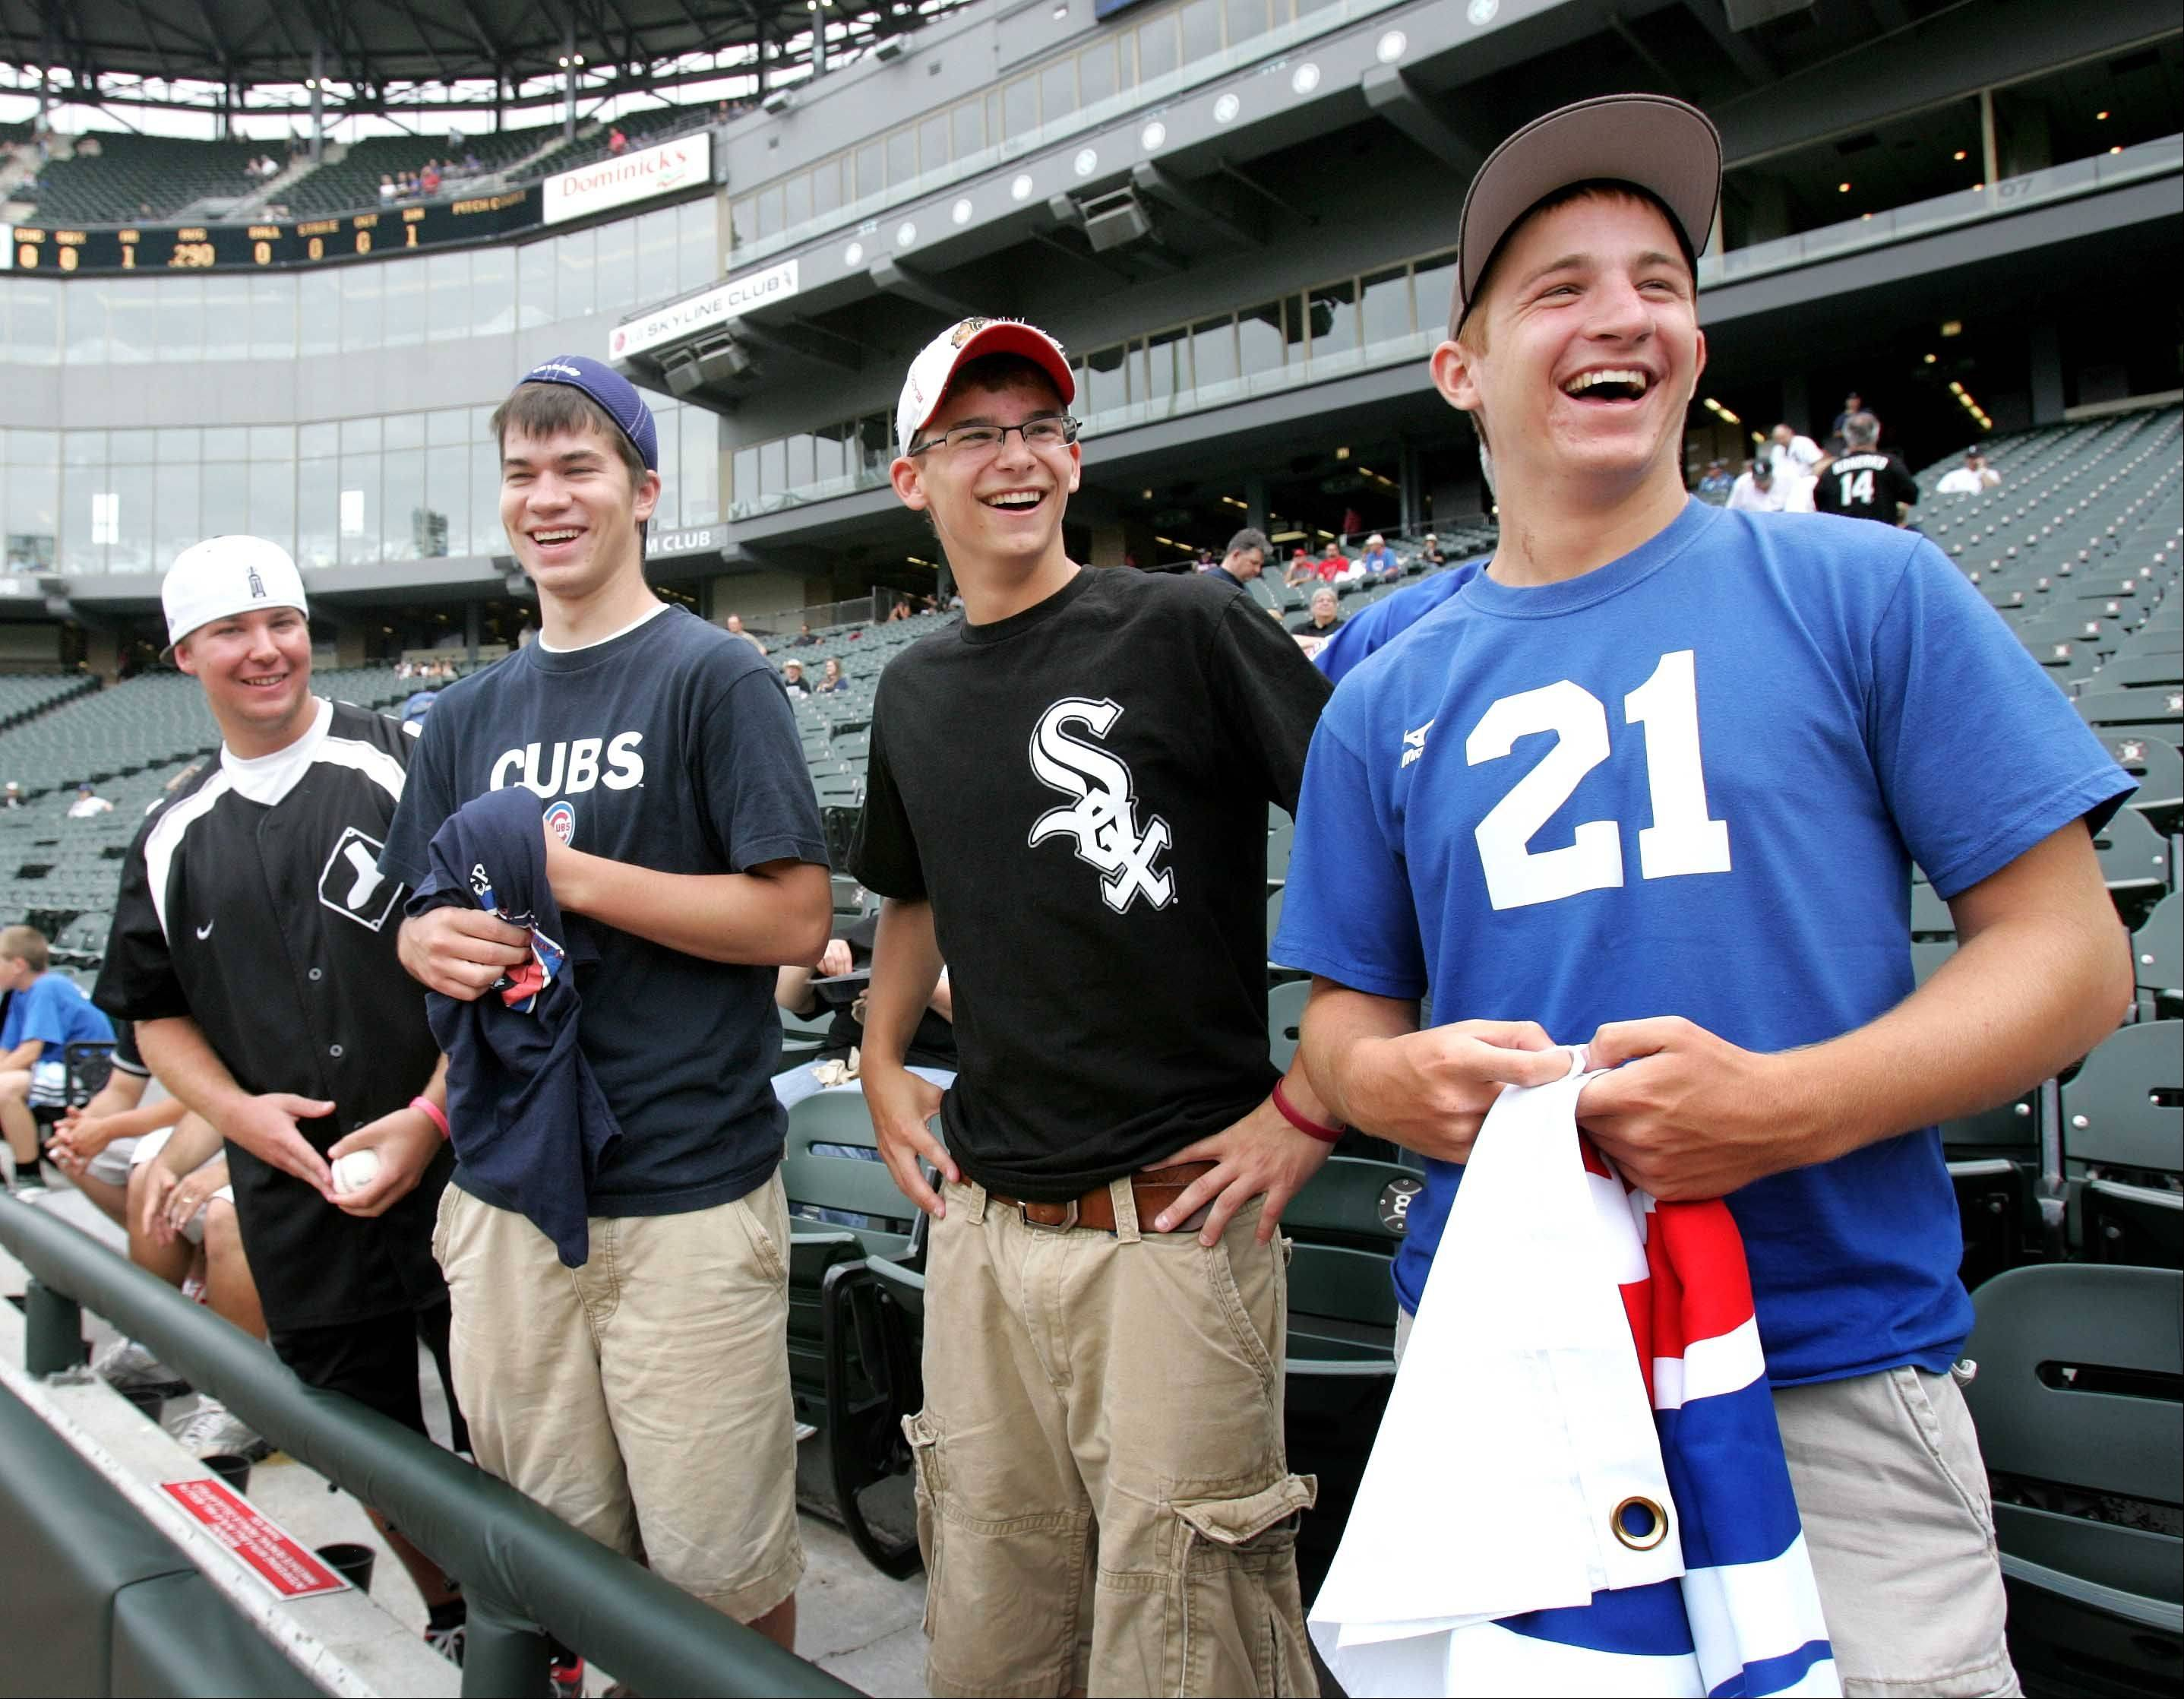 Friends Joe Caprio, from left, Chris Jelinek, Mitch Simpson and Nolan Hucek, all age 17 from Joliet, wait for the start of the Cubs and White Sox game Monday night.